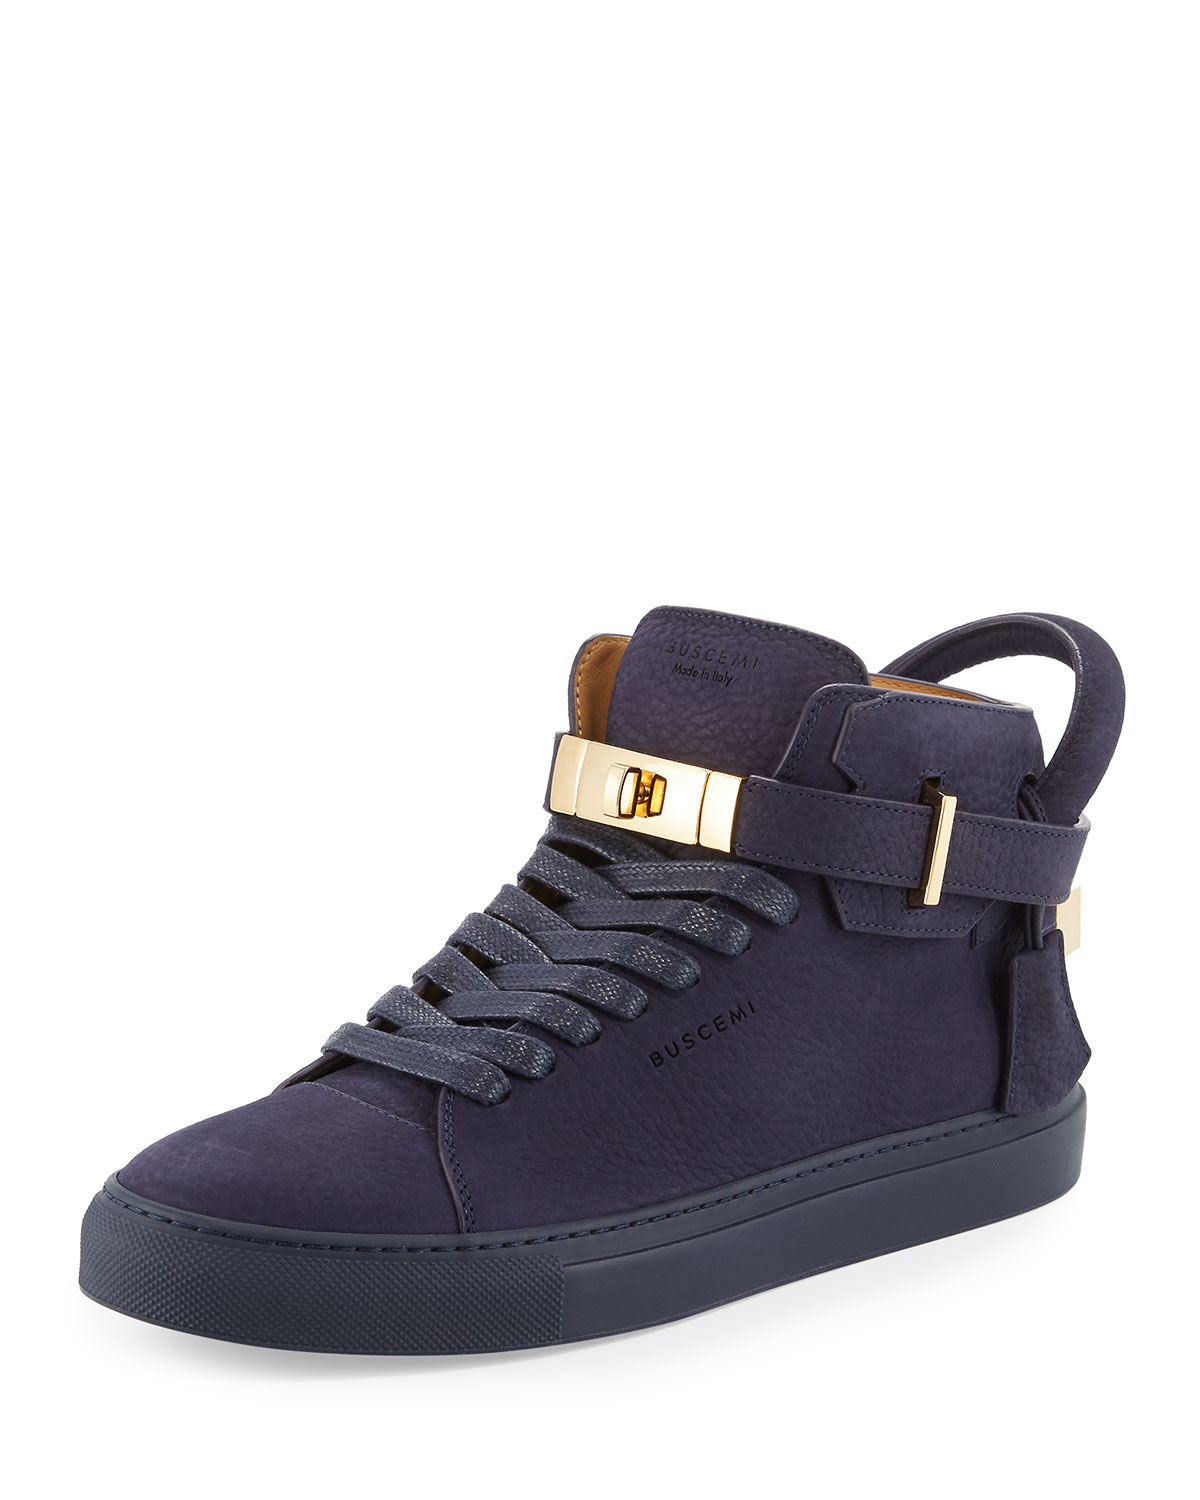 100mm Men's Nubuck Leather High-Top Sneaker, Blue Ink